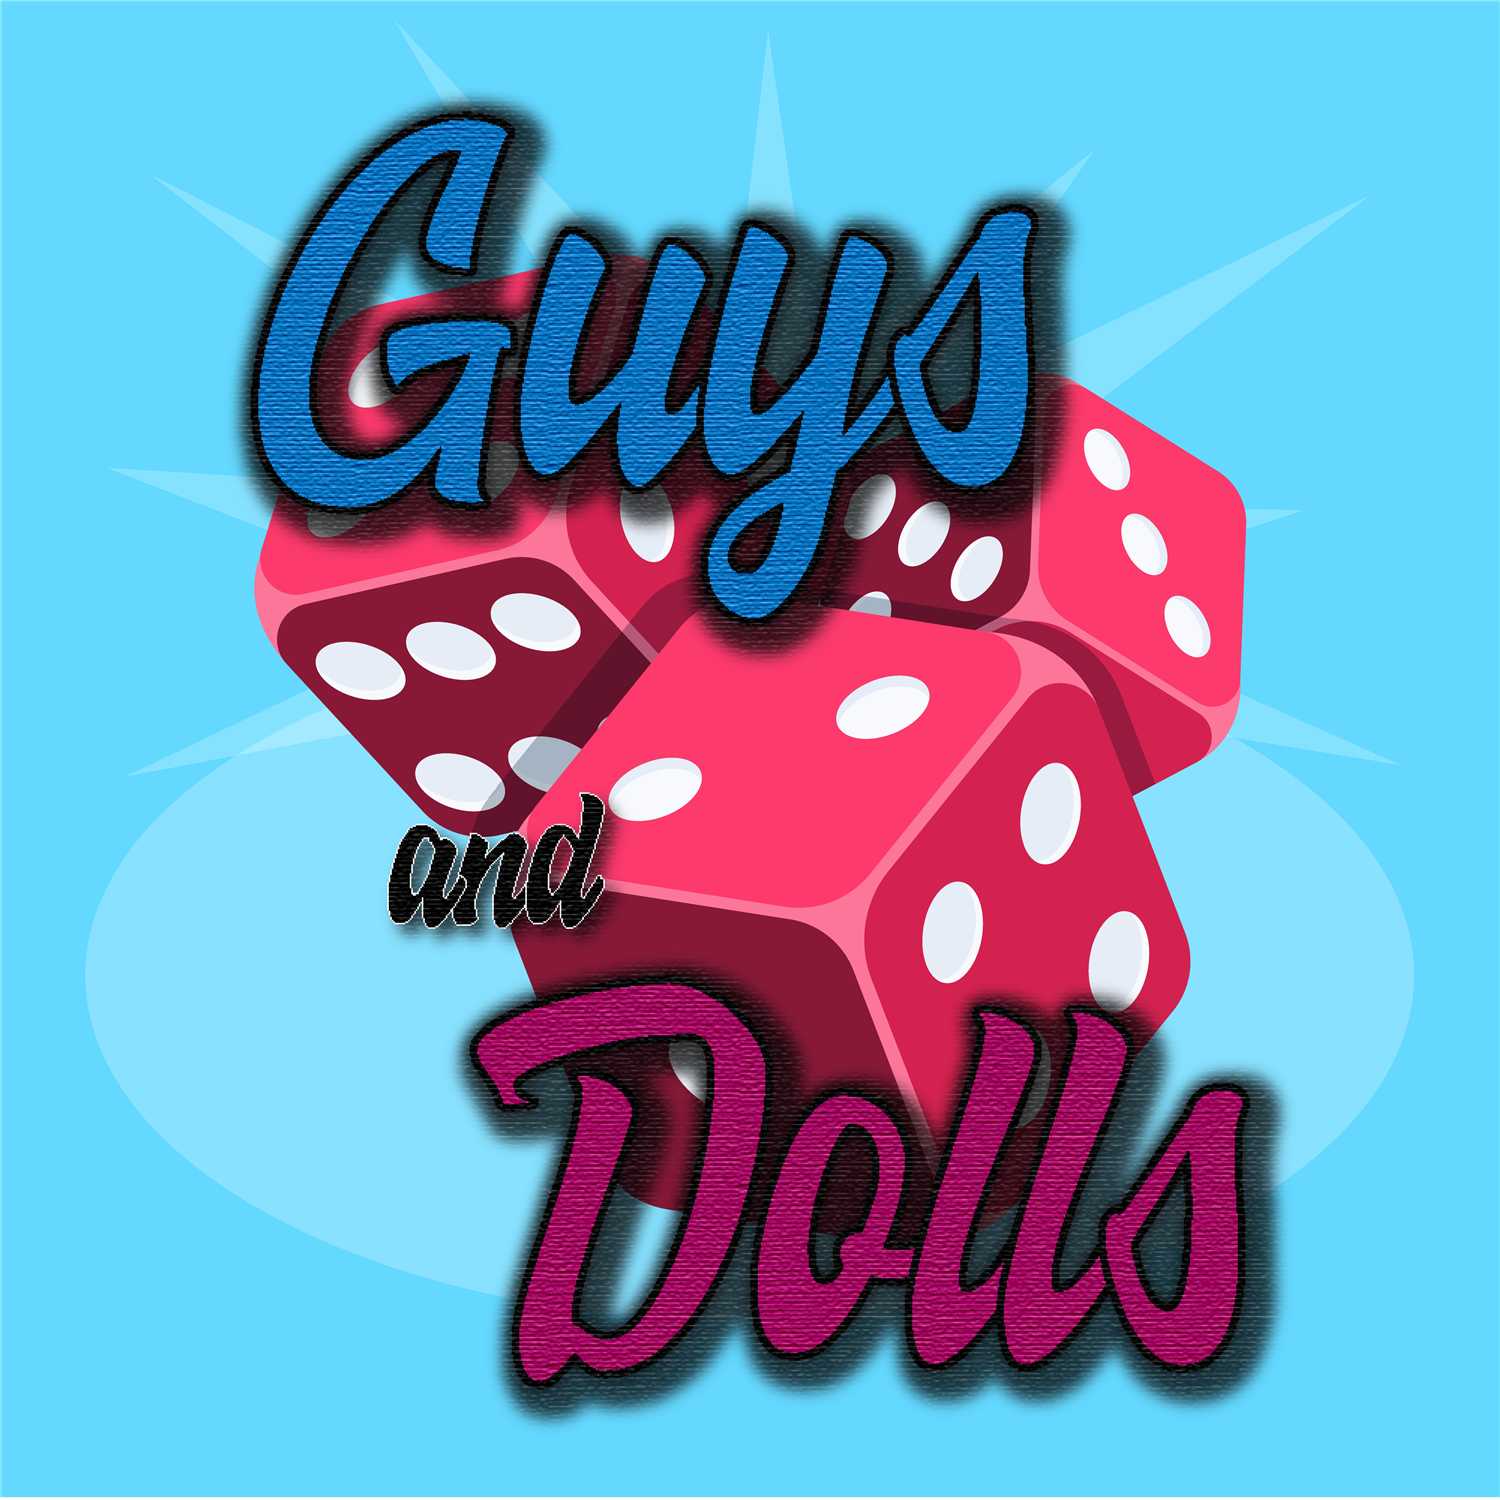 Guys and Dolls the High School Musical